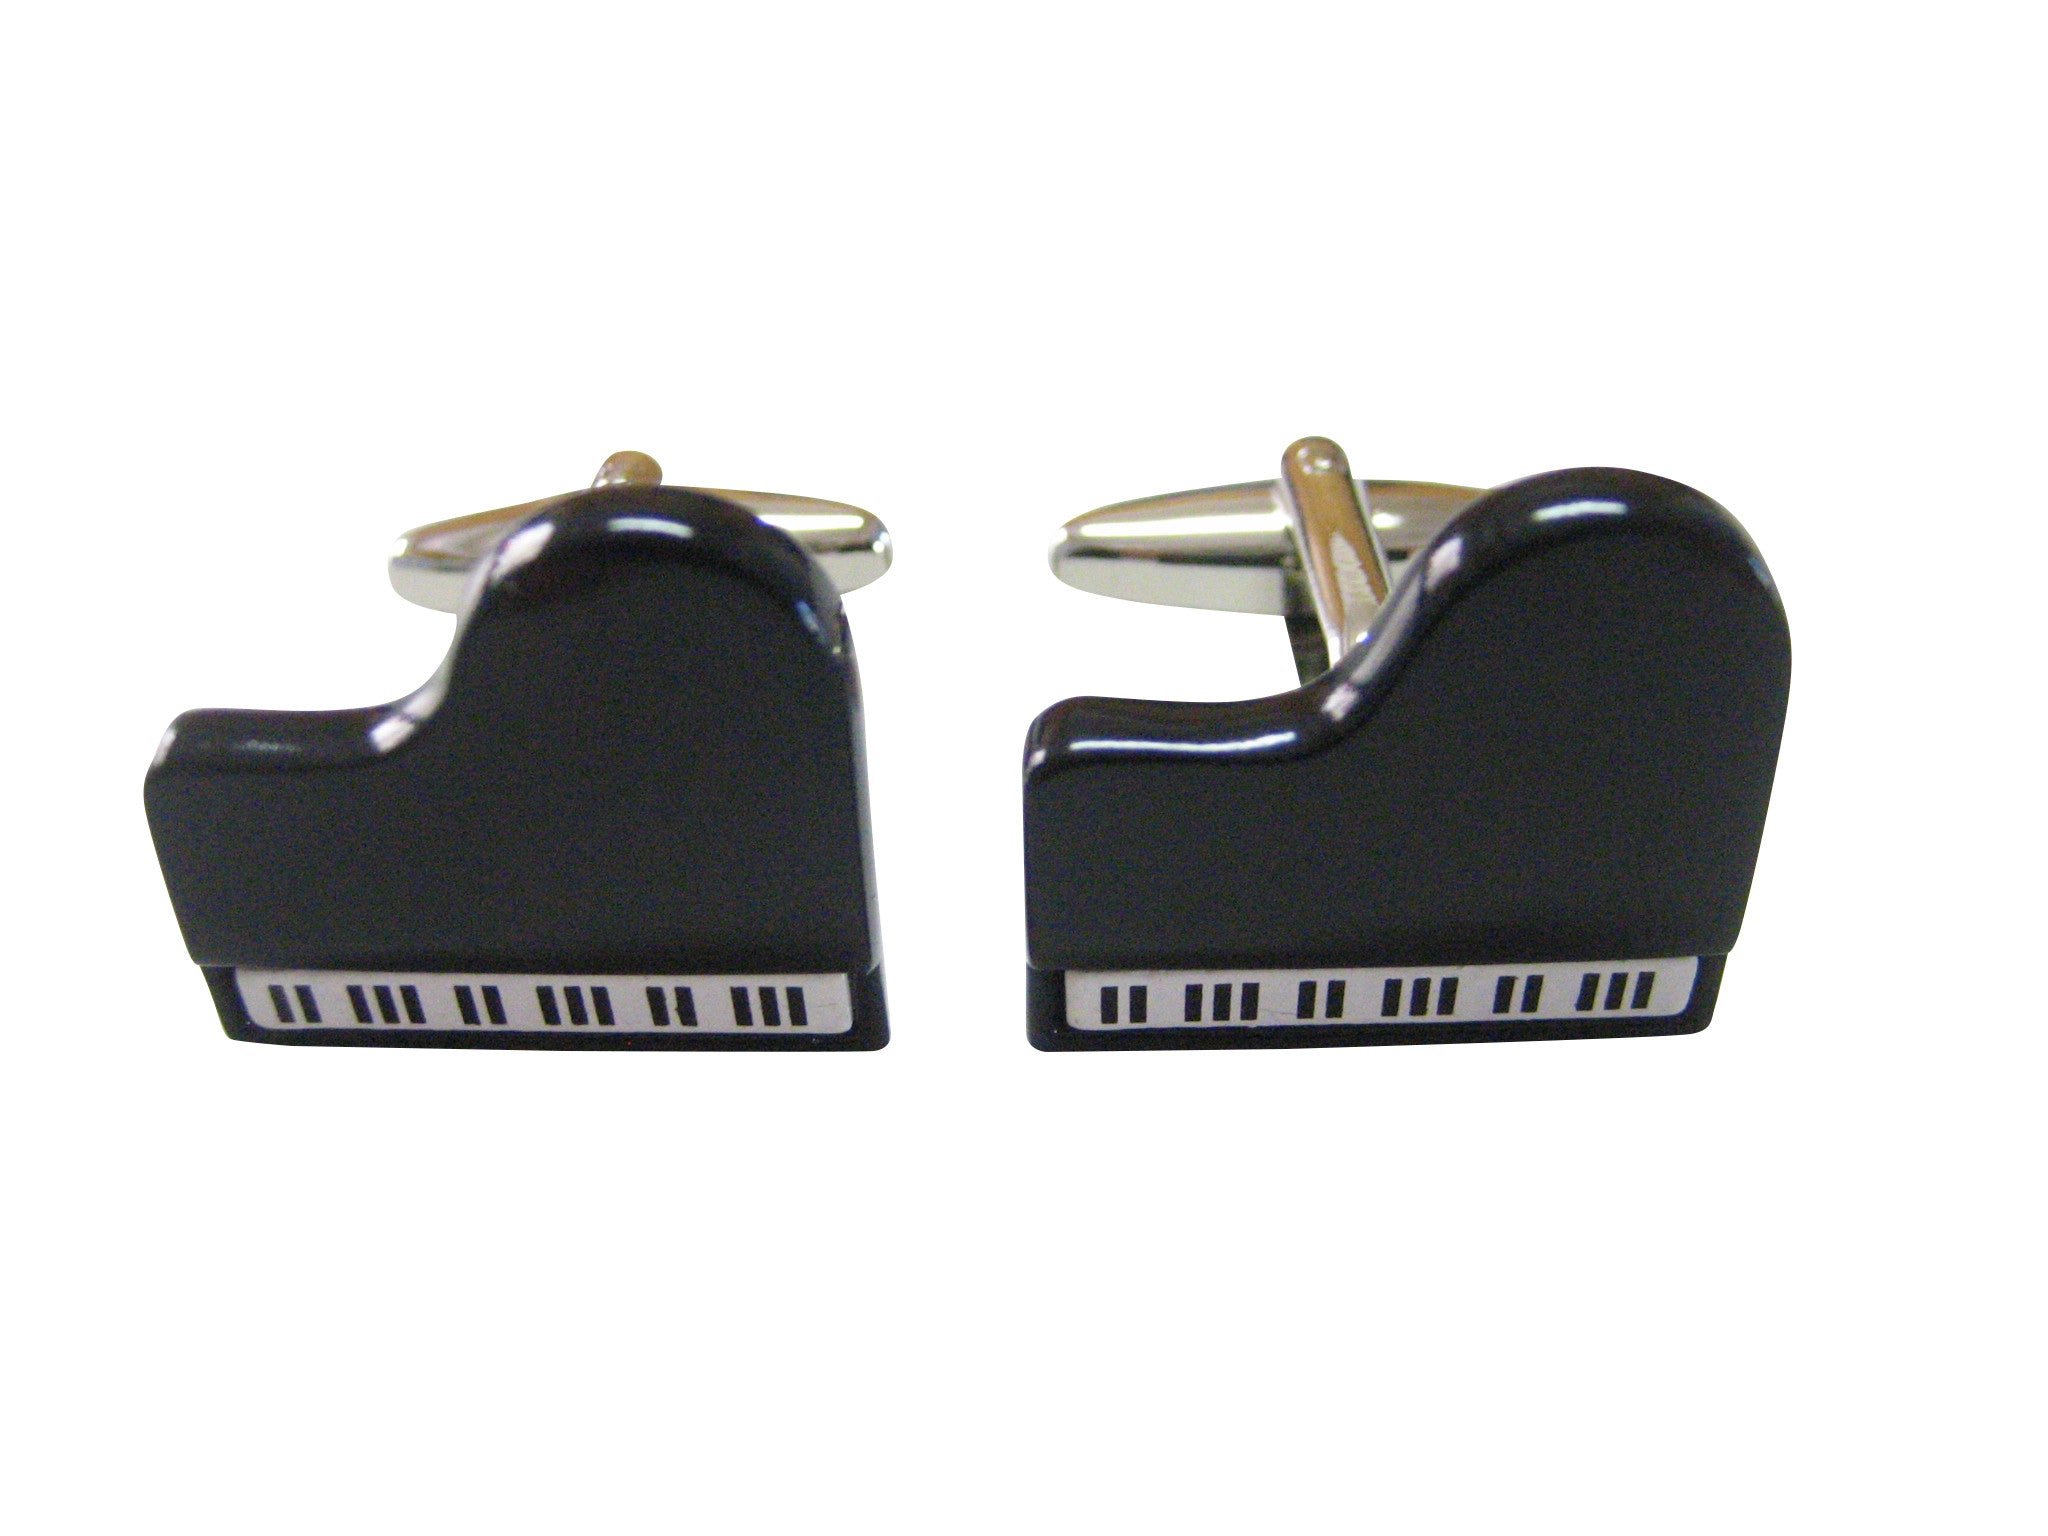 Black Musical Piano Cufflinks